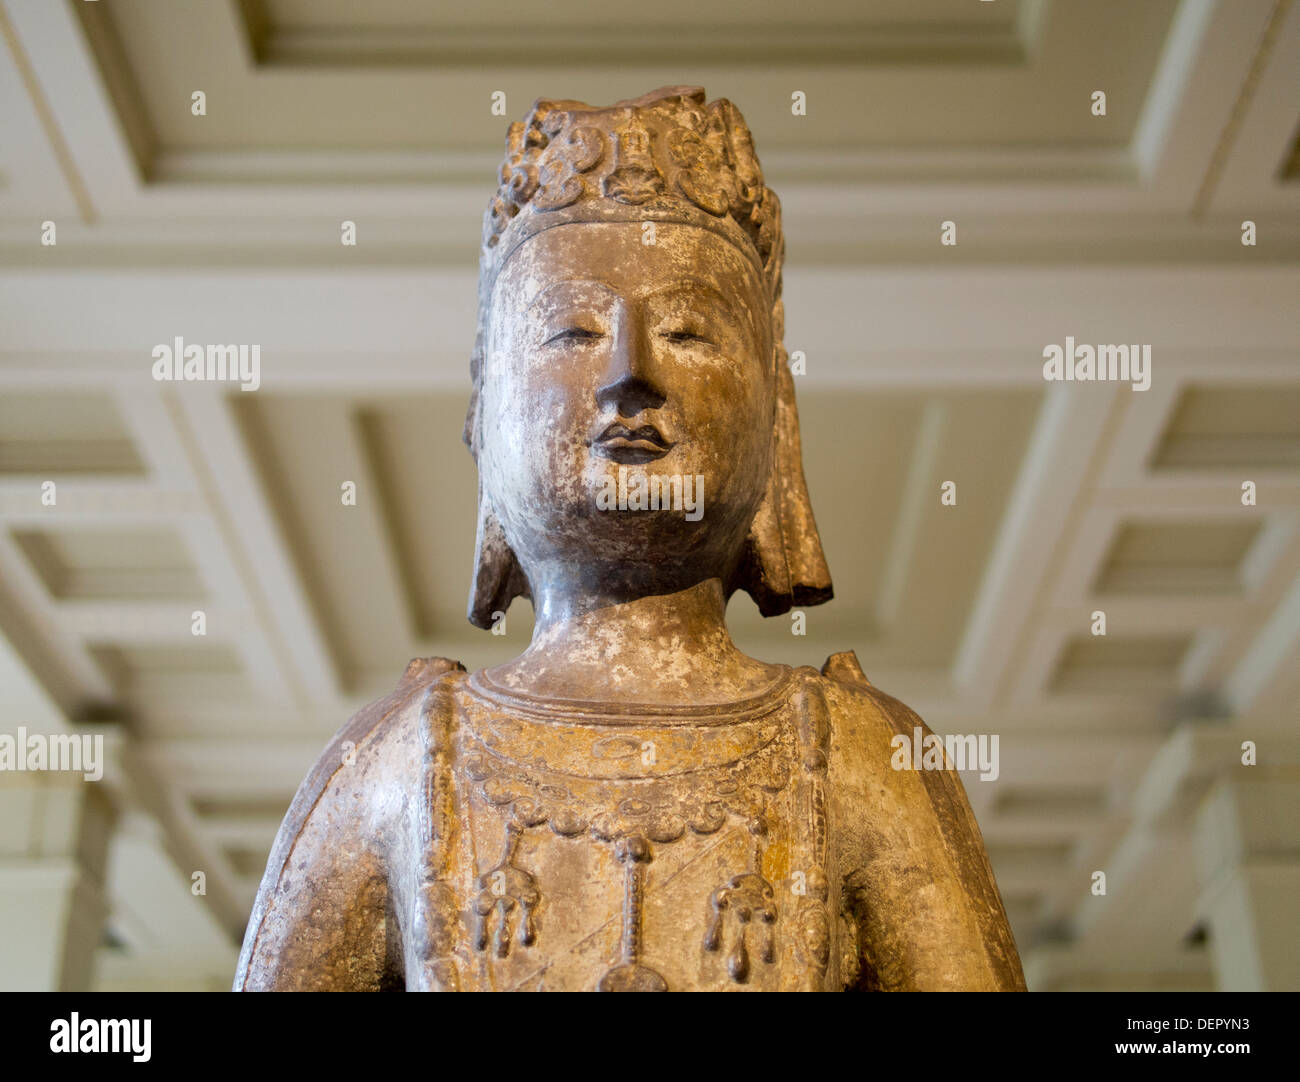 The British Museum, London - Chinese sandstone statue of a Bodhisattva 3 - Stock Image